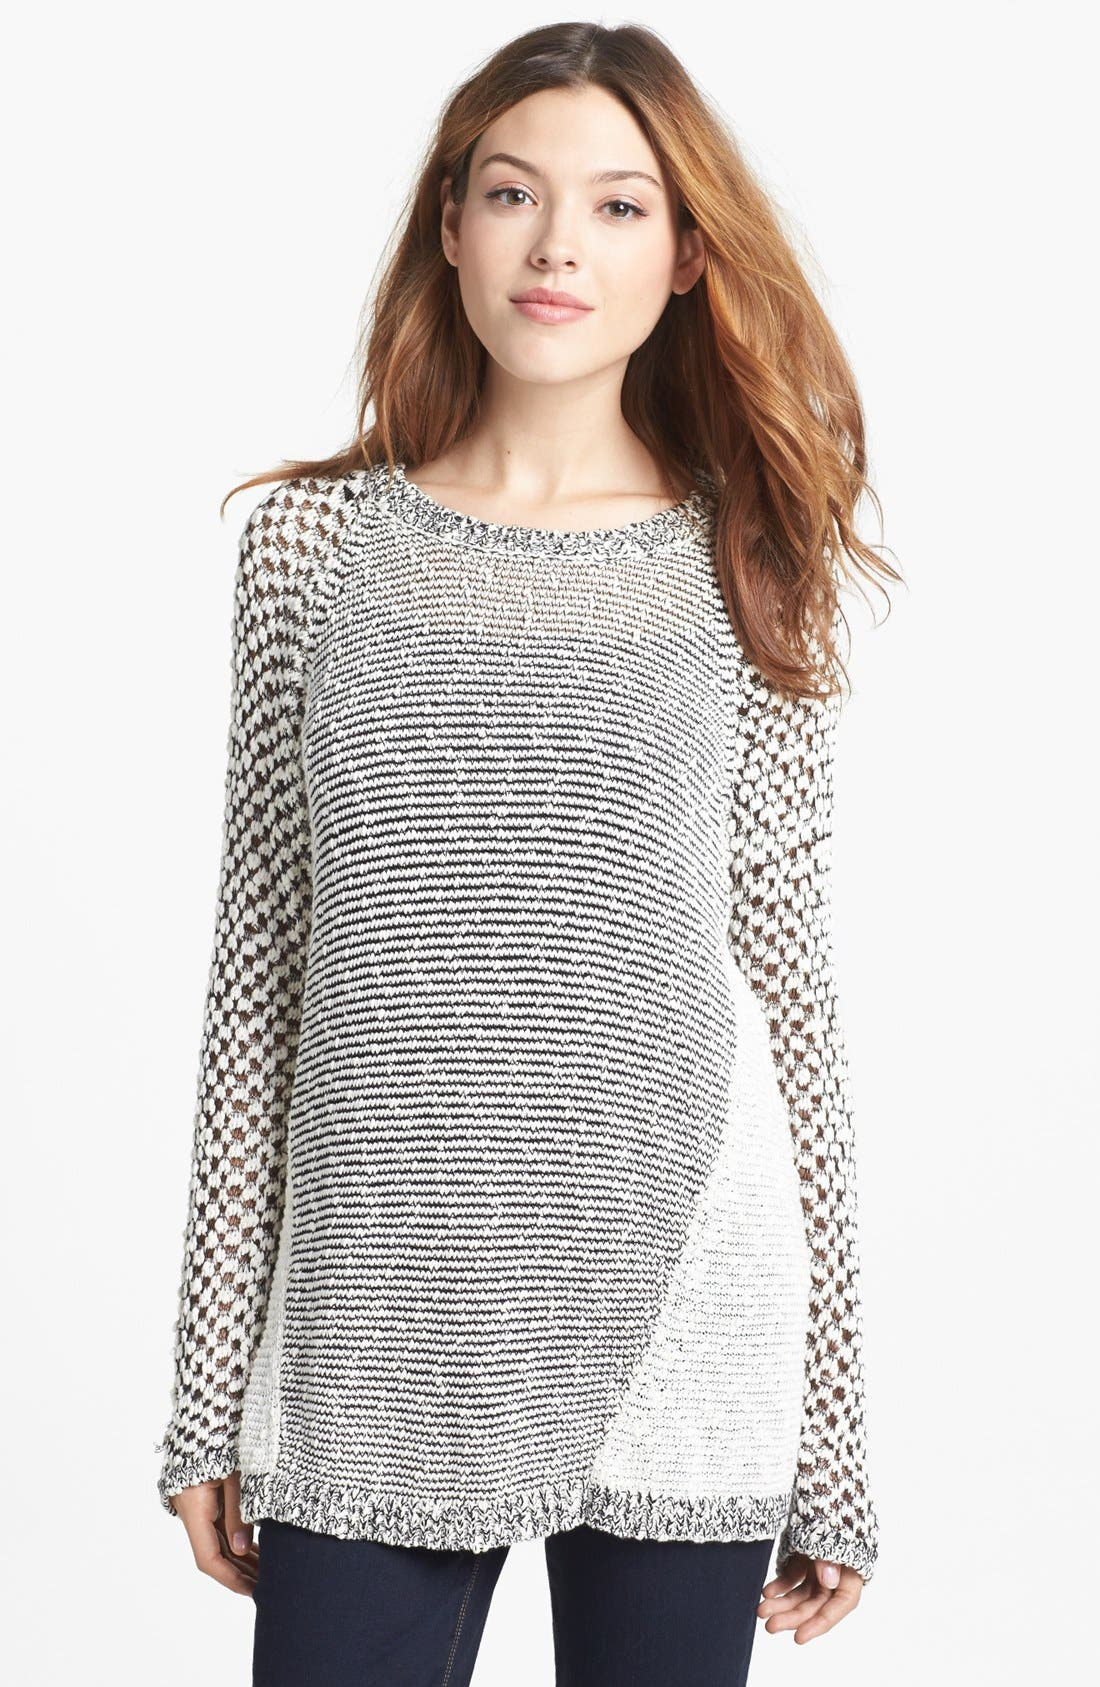 Alternate Image 1 Selected - Two by Vince Camuto Mixed Stitch Crewneck Sweater